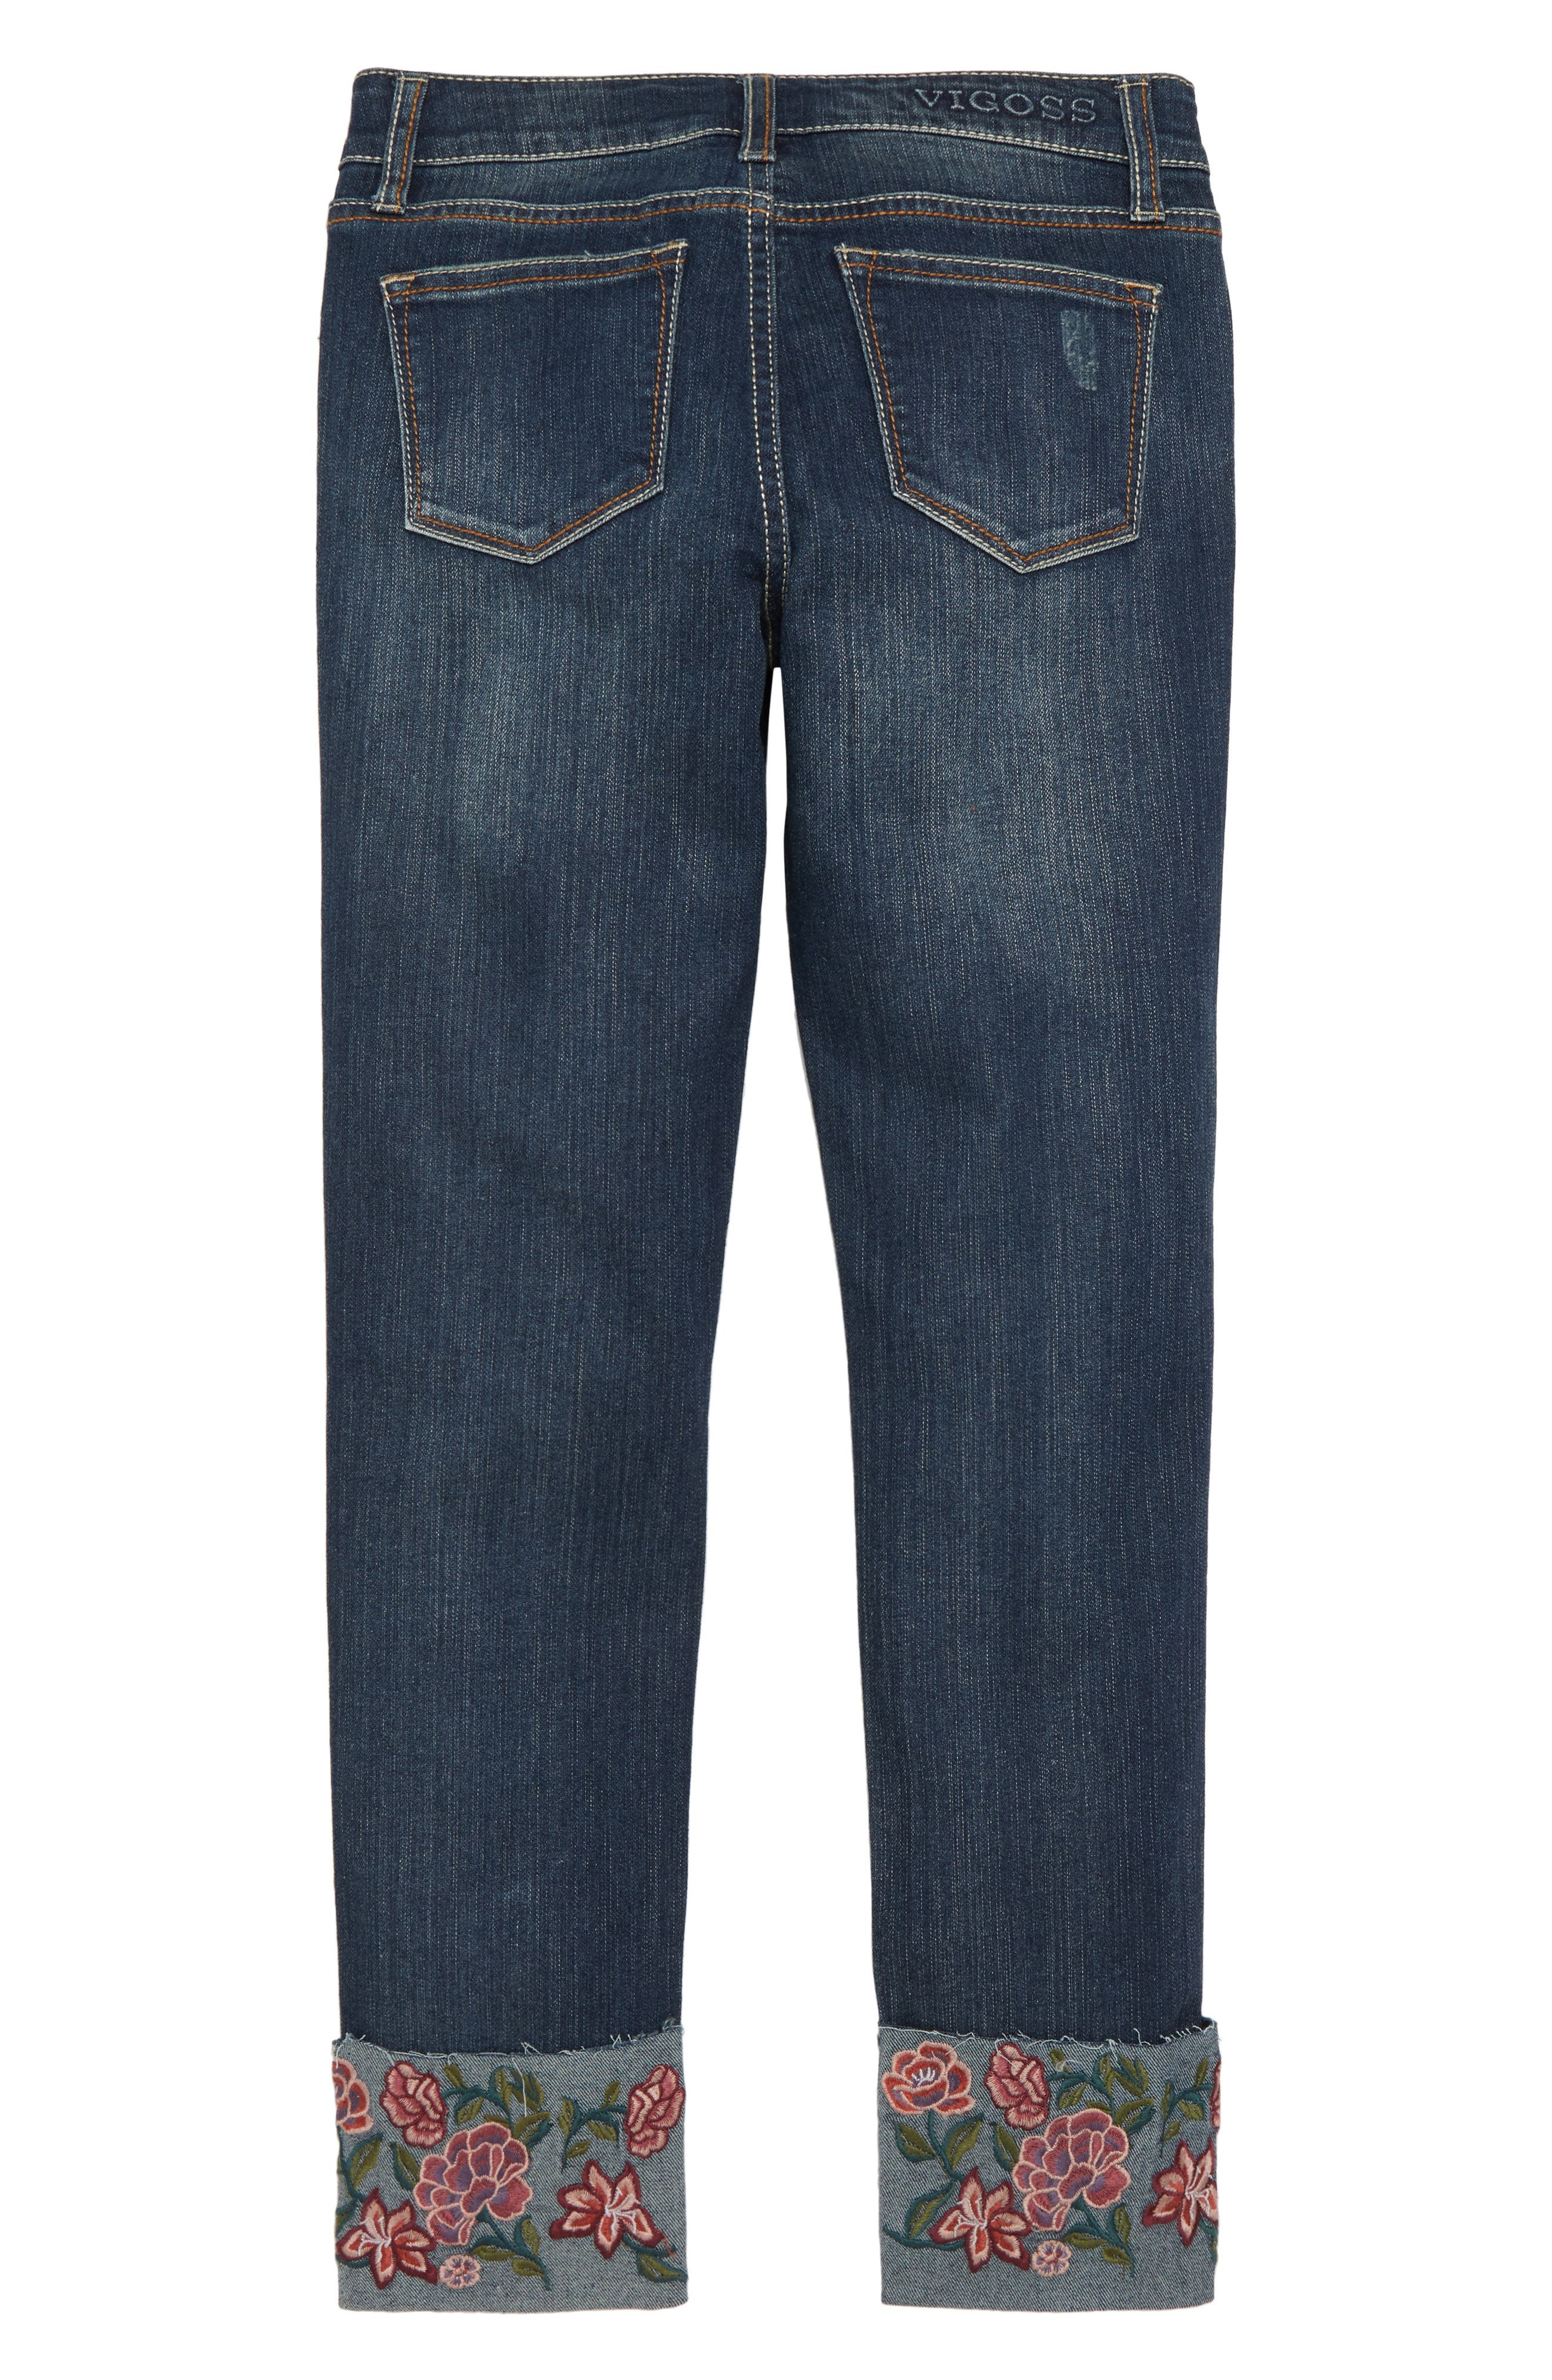 Embroidered Cuff Jeans,                             Alternate thumbnail 2, color,                             DARK MIDNIGHT/ DMN